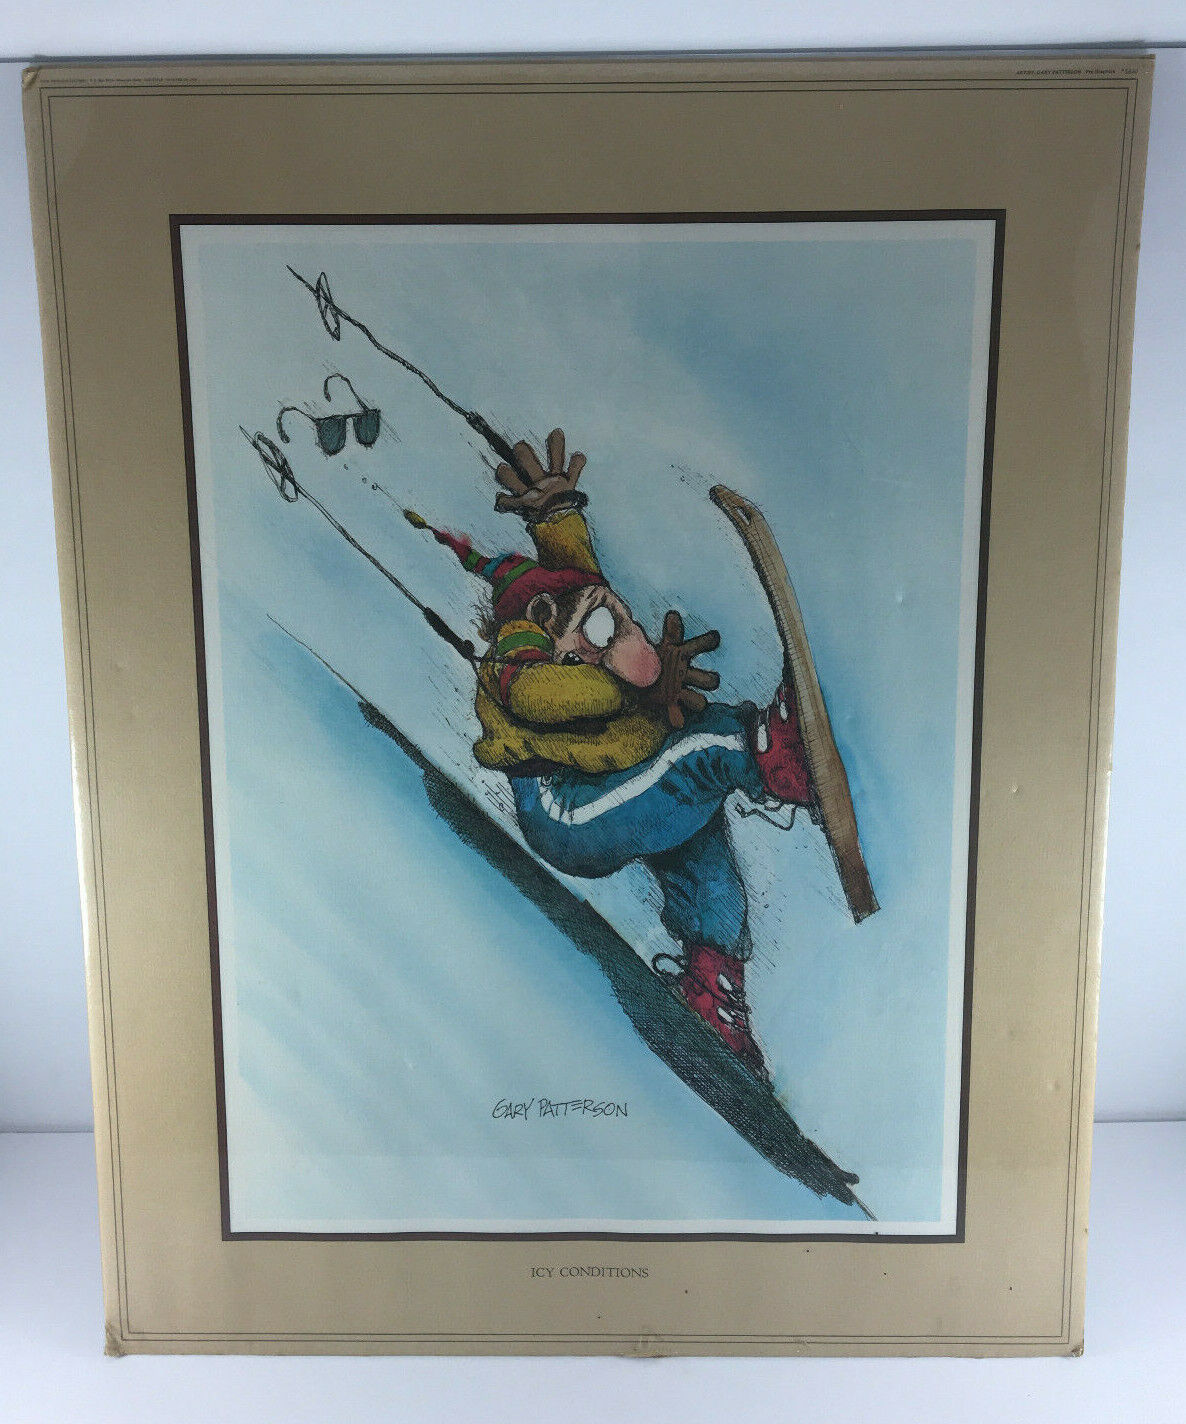 Vtg Gary Patterson 1978 ICY CONDITIONS 1650 Thought Factory Poster 20 x16 USA - $24.95